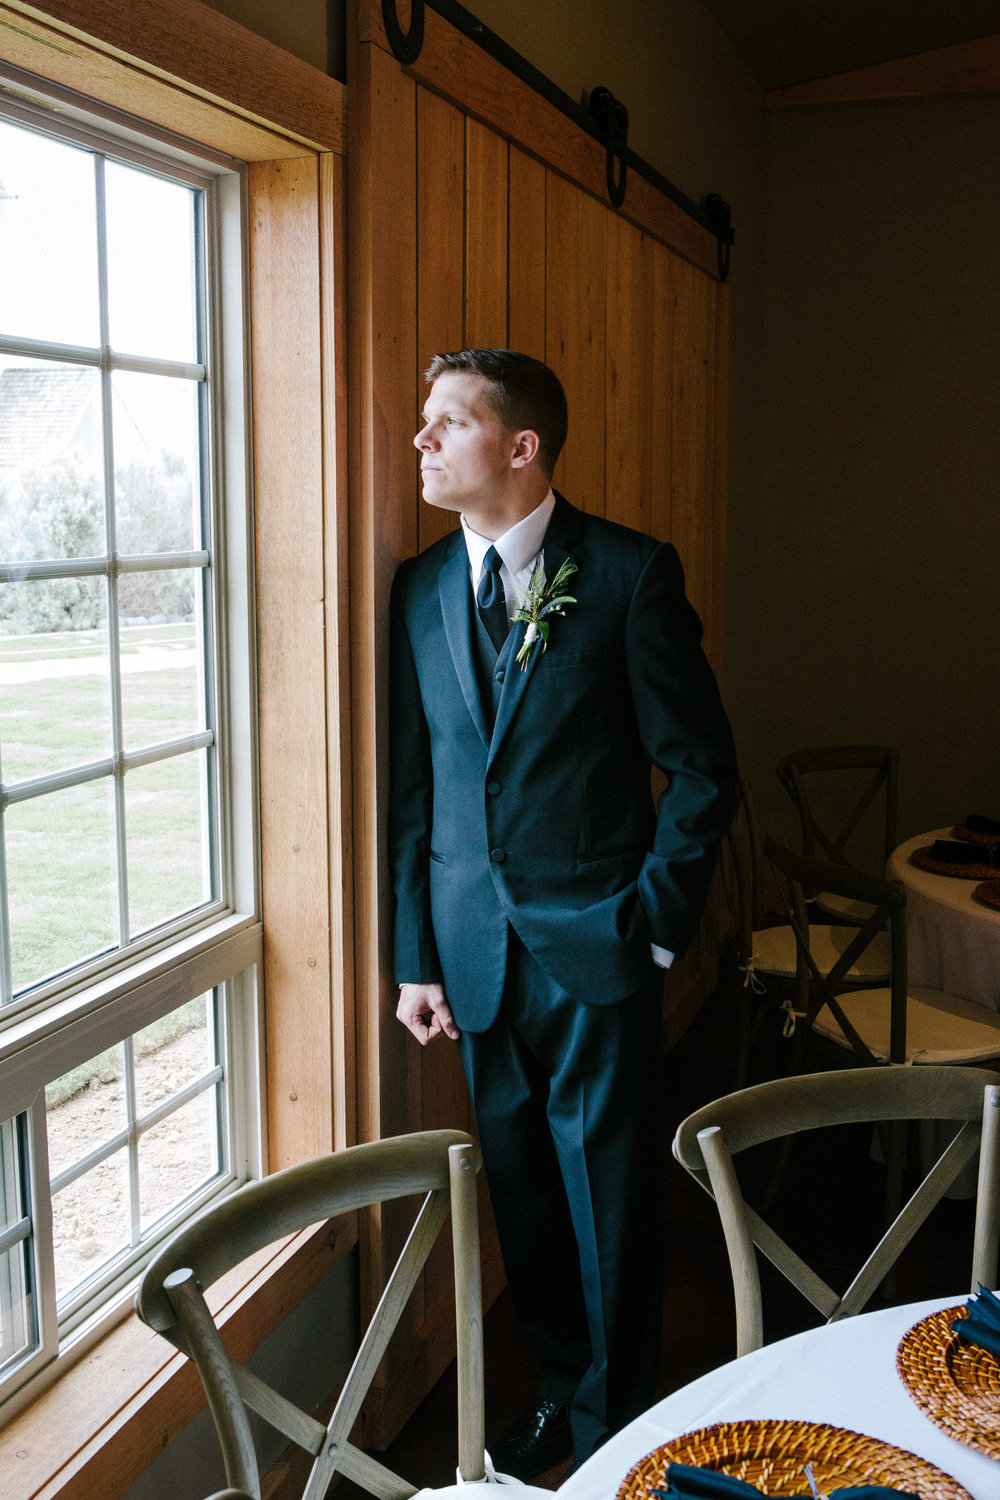 Still Water Hollow Barn Hall, Radion Photography, Ira and Lucy Wedding Coordination and Design